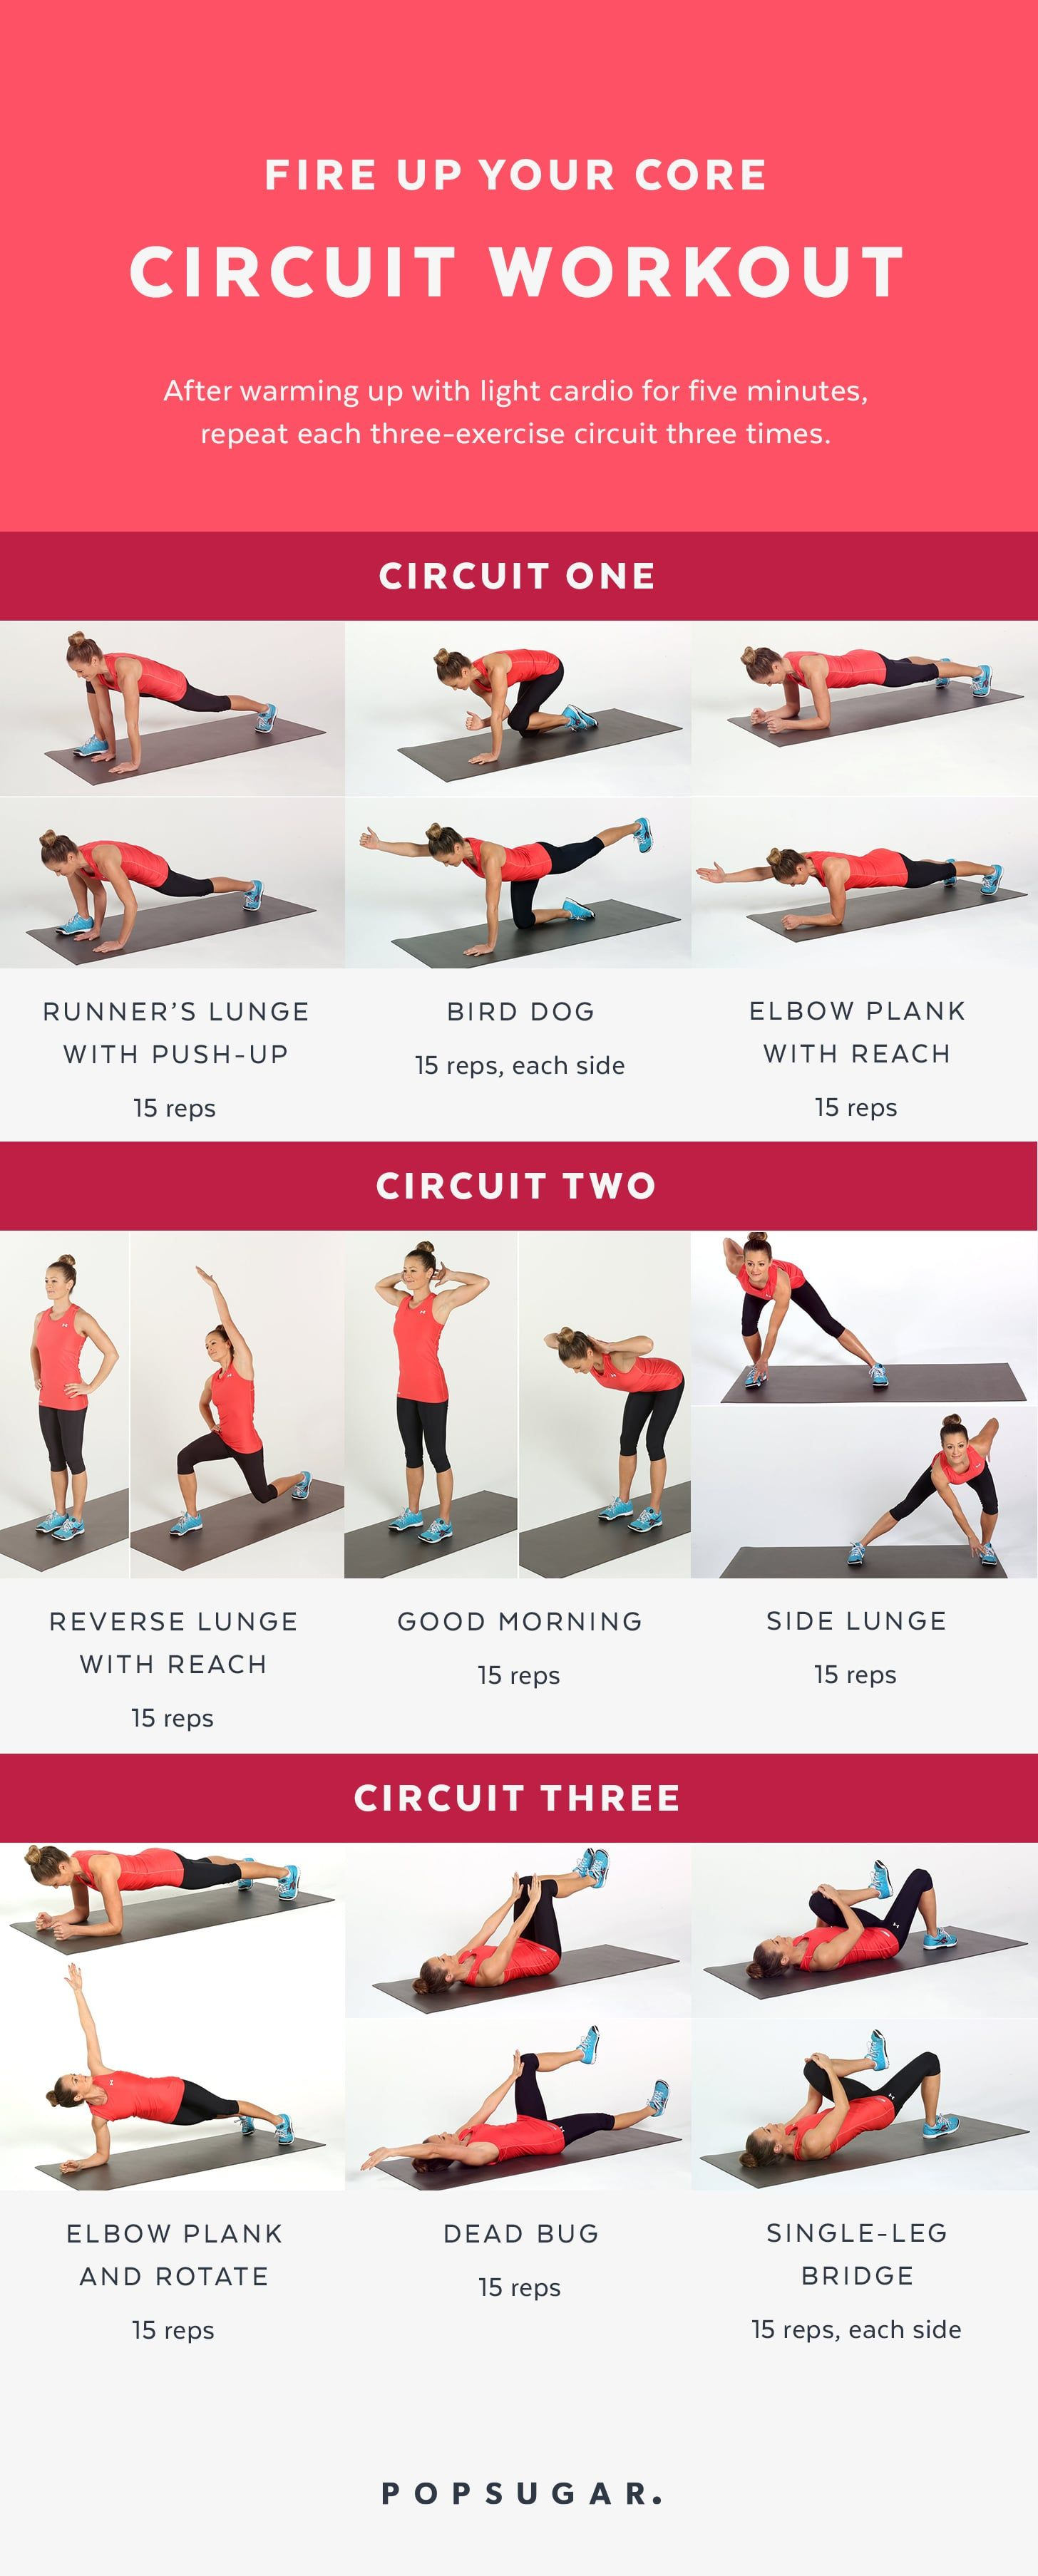 Fire Up Your Core Circuit Workout Exercise